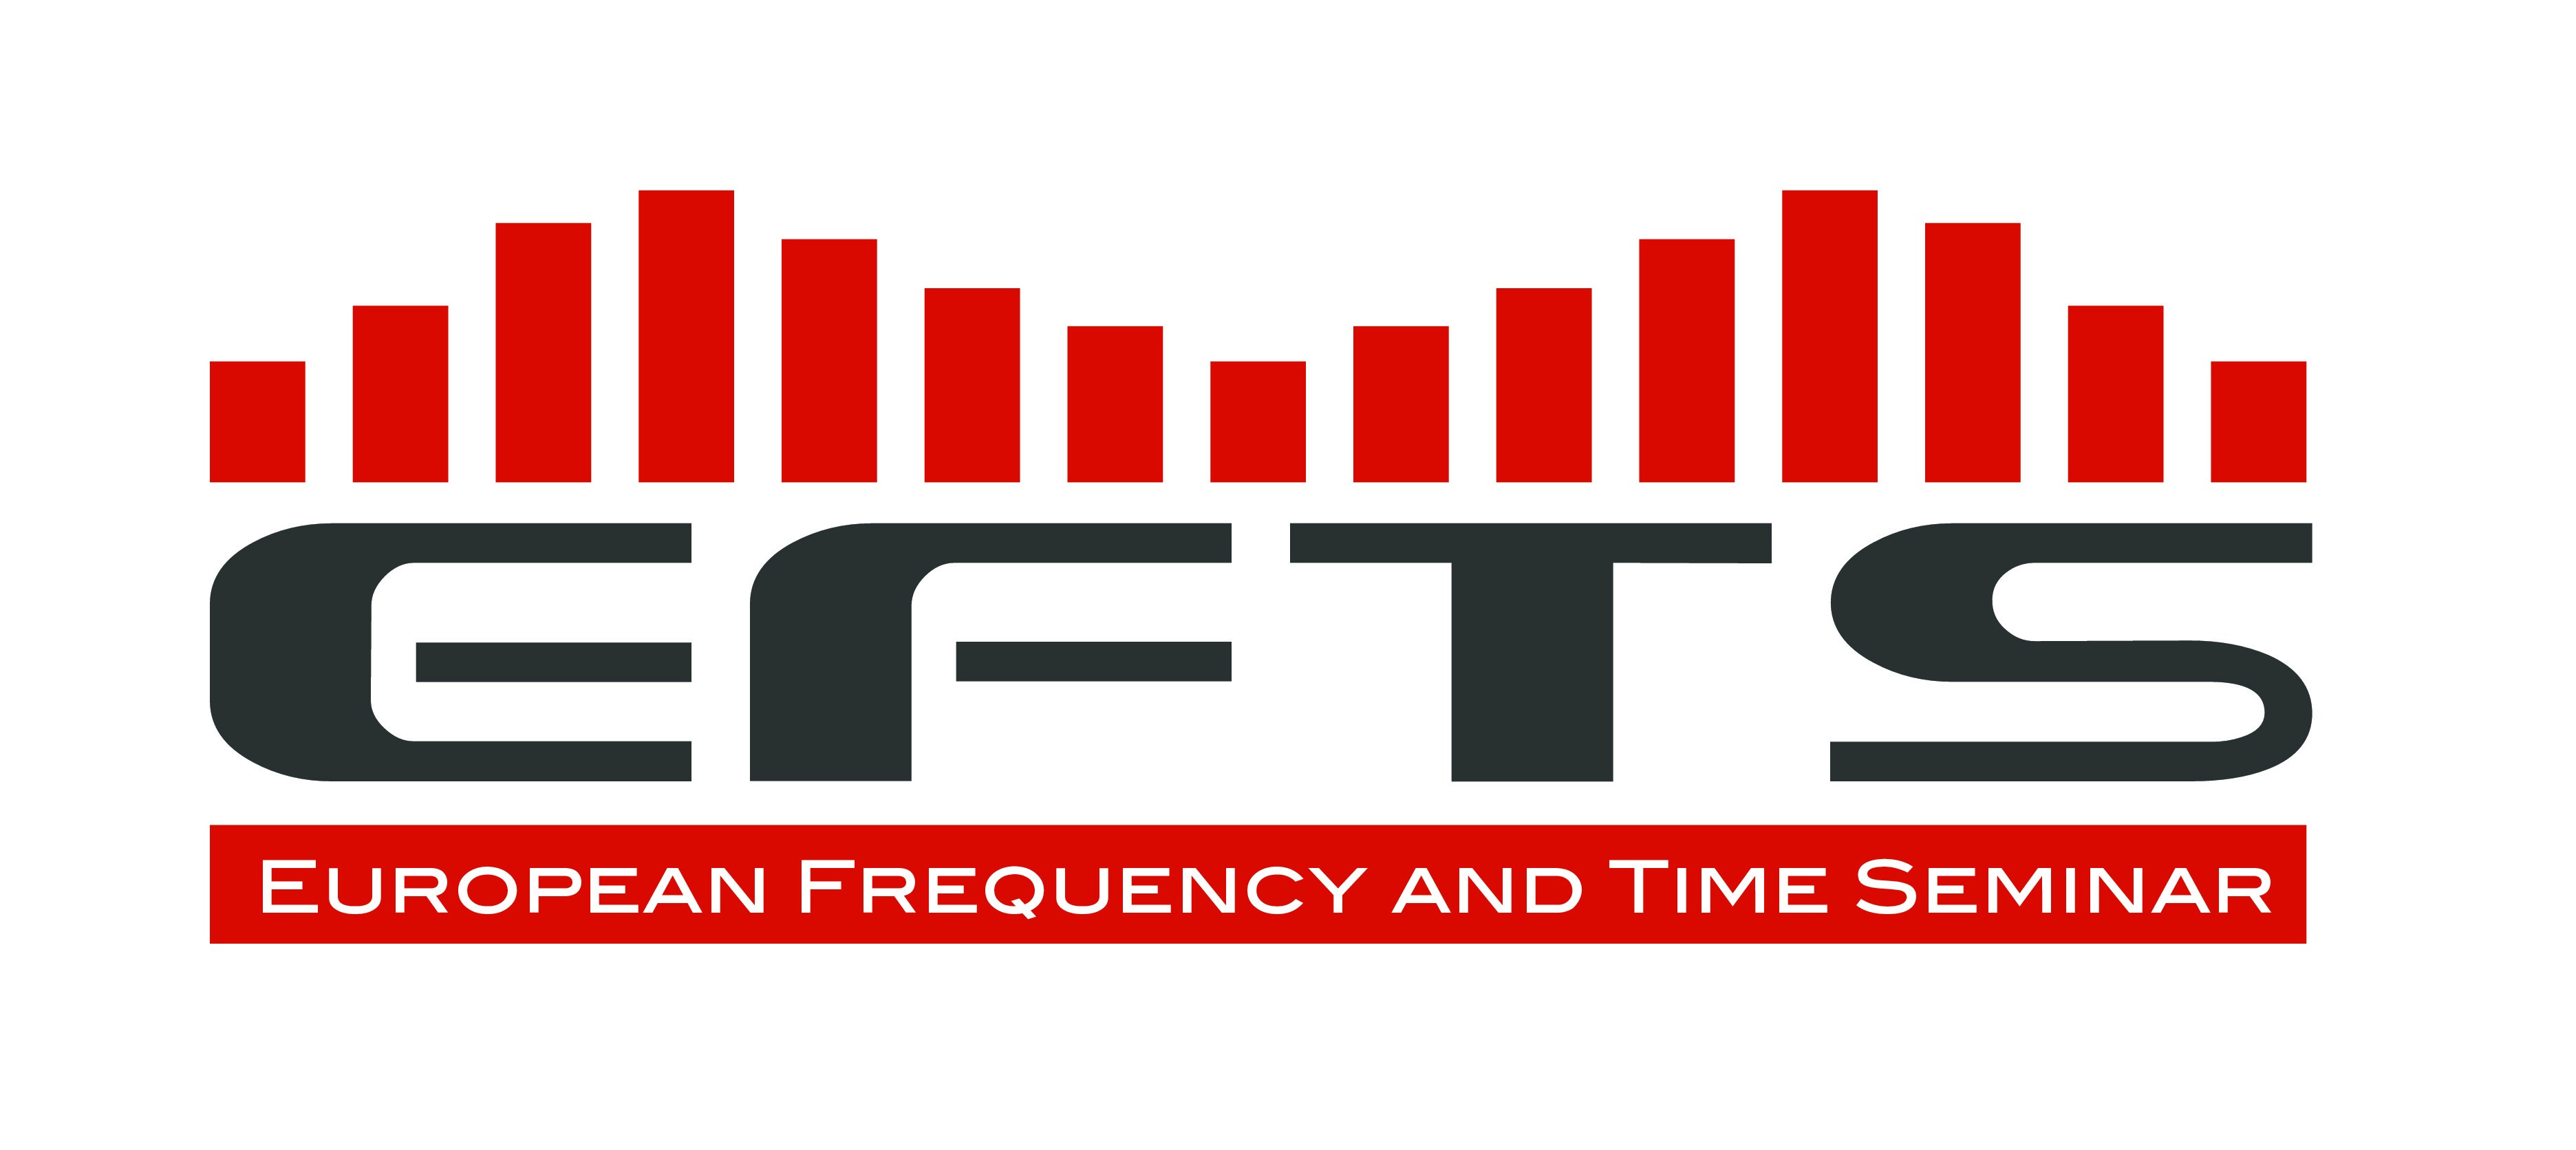 European Frequency and Time Seminar